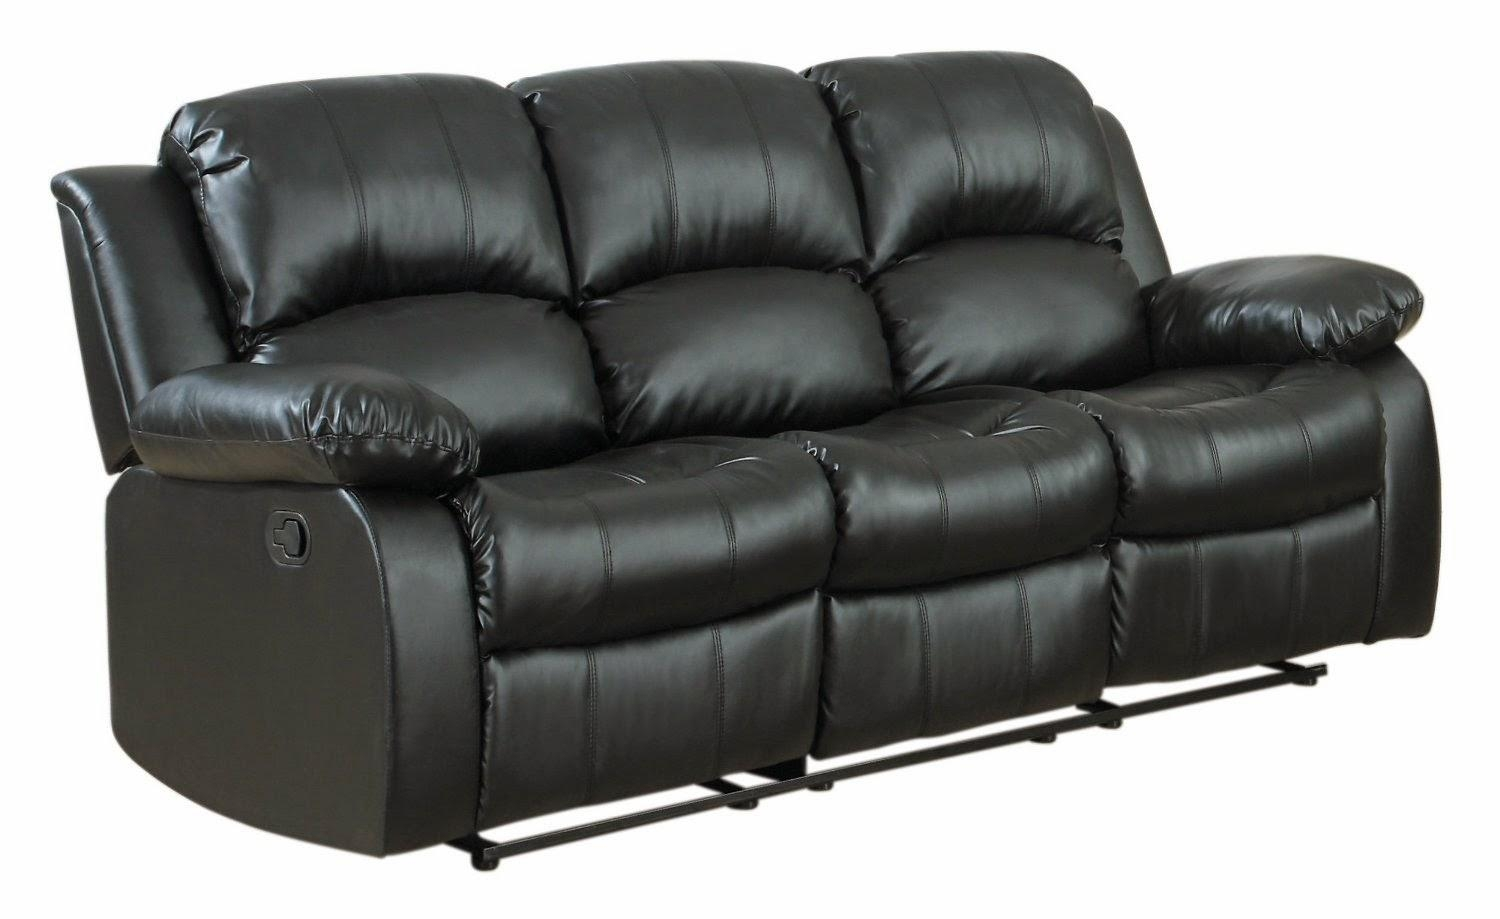 Reclining Sofas For Sale: Berkline Leather Reclining Sofa Costco Inside Berkline Leather Recliner Sofas (Image 6 of 20)